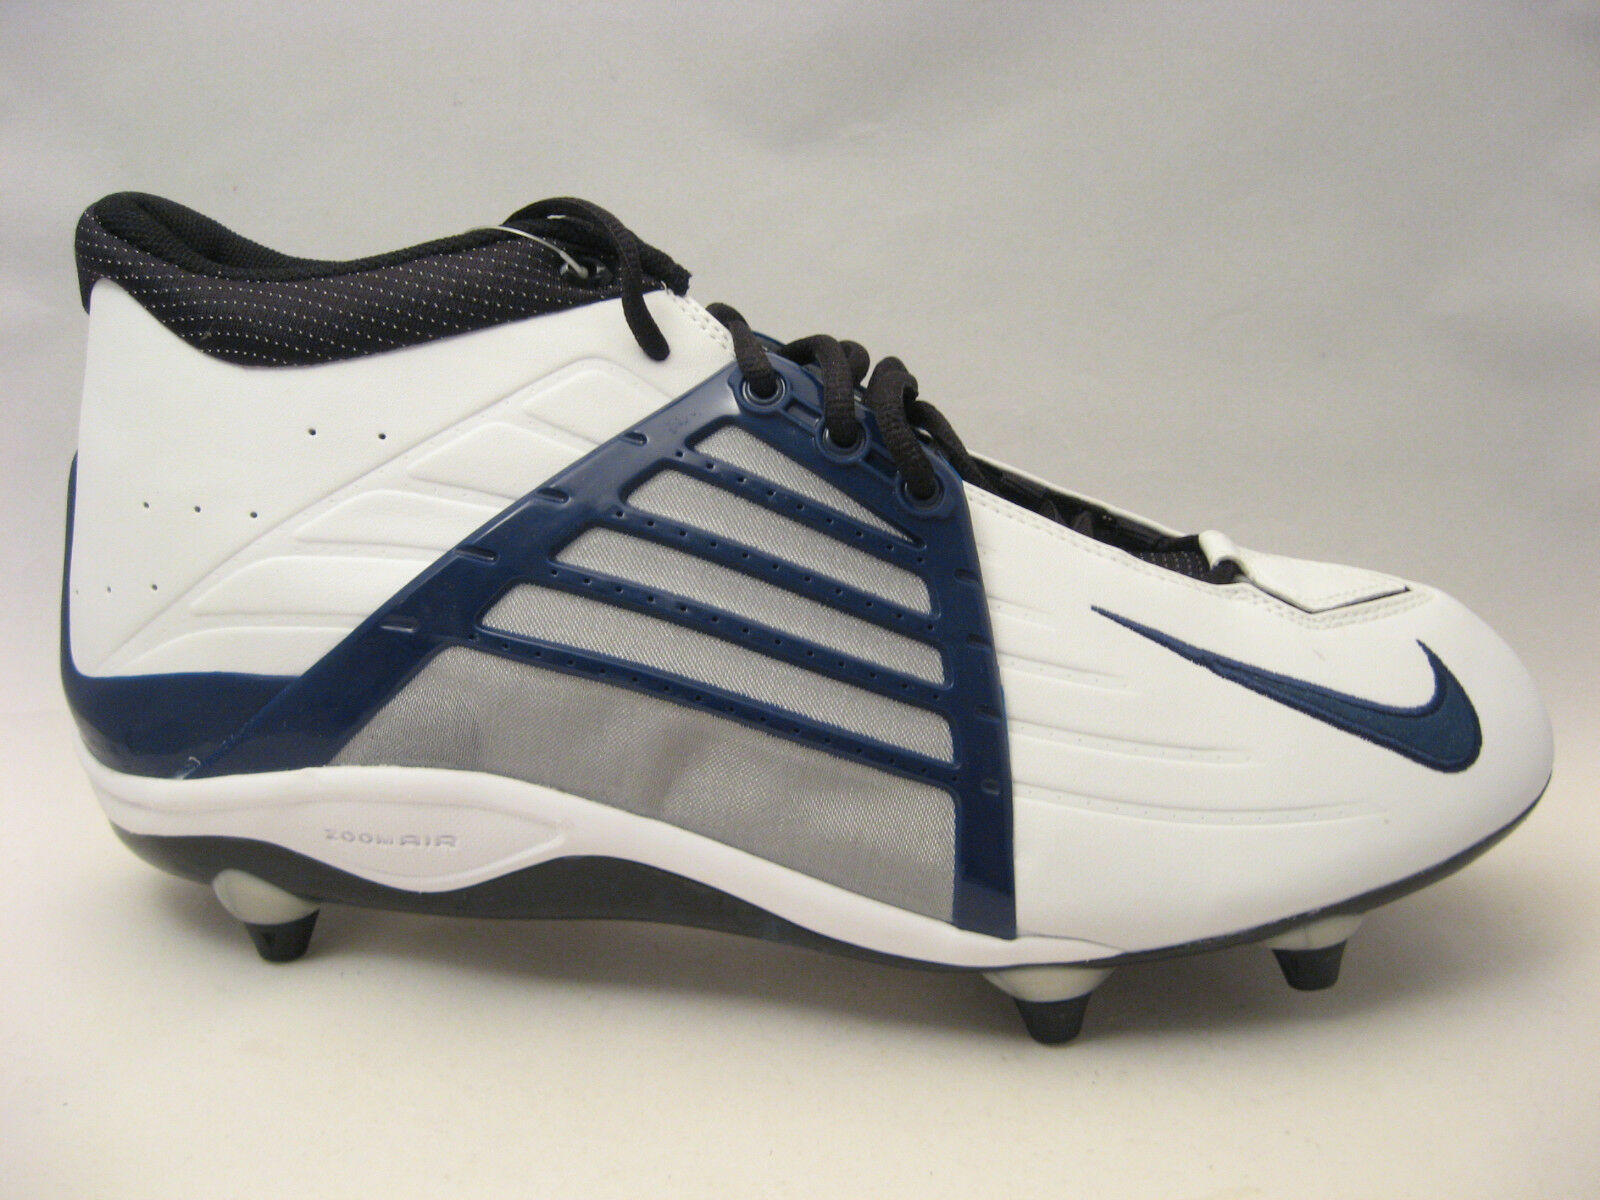 Nike Air Zoom Impact D Project Football Cleats 16 Alpha Project D White Navy Blue Black b749c8